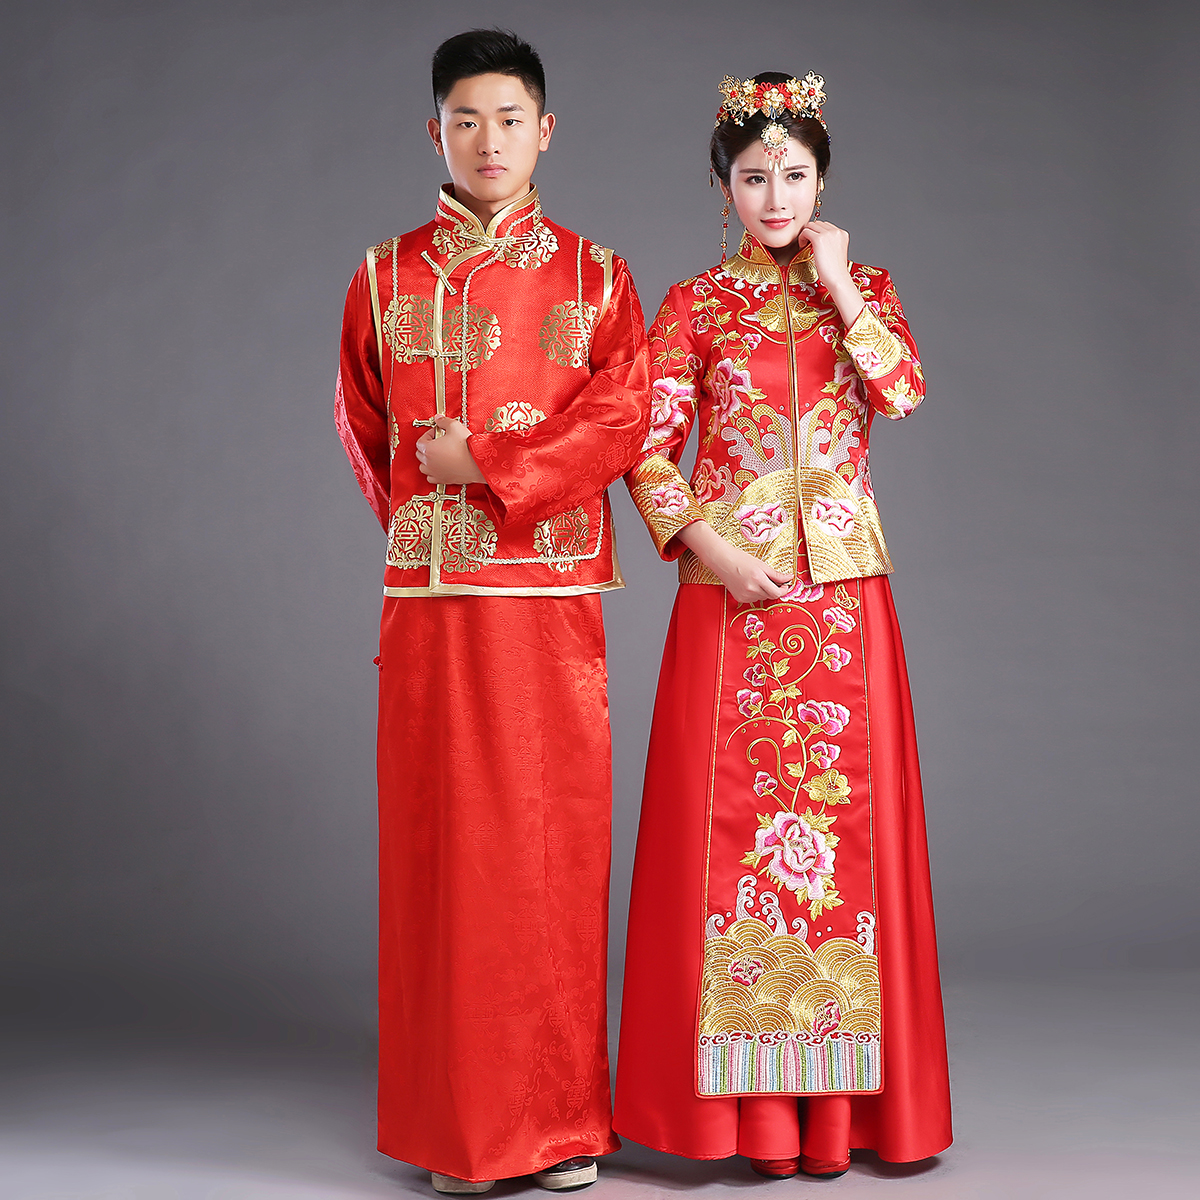 Chinese traditional Bride clothing pratensis style wedding